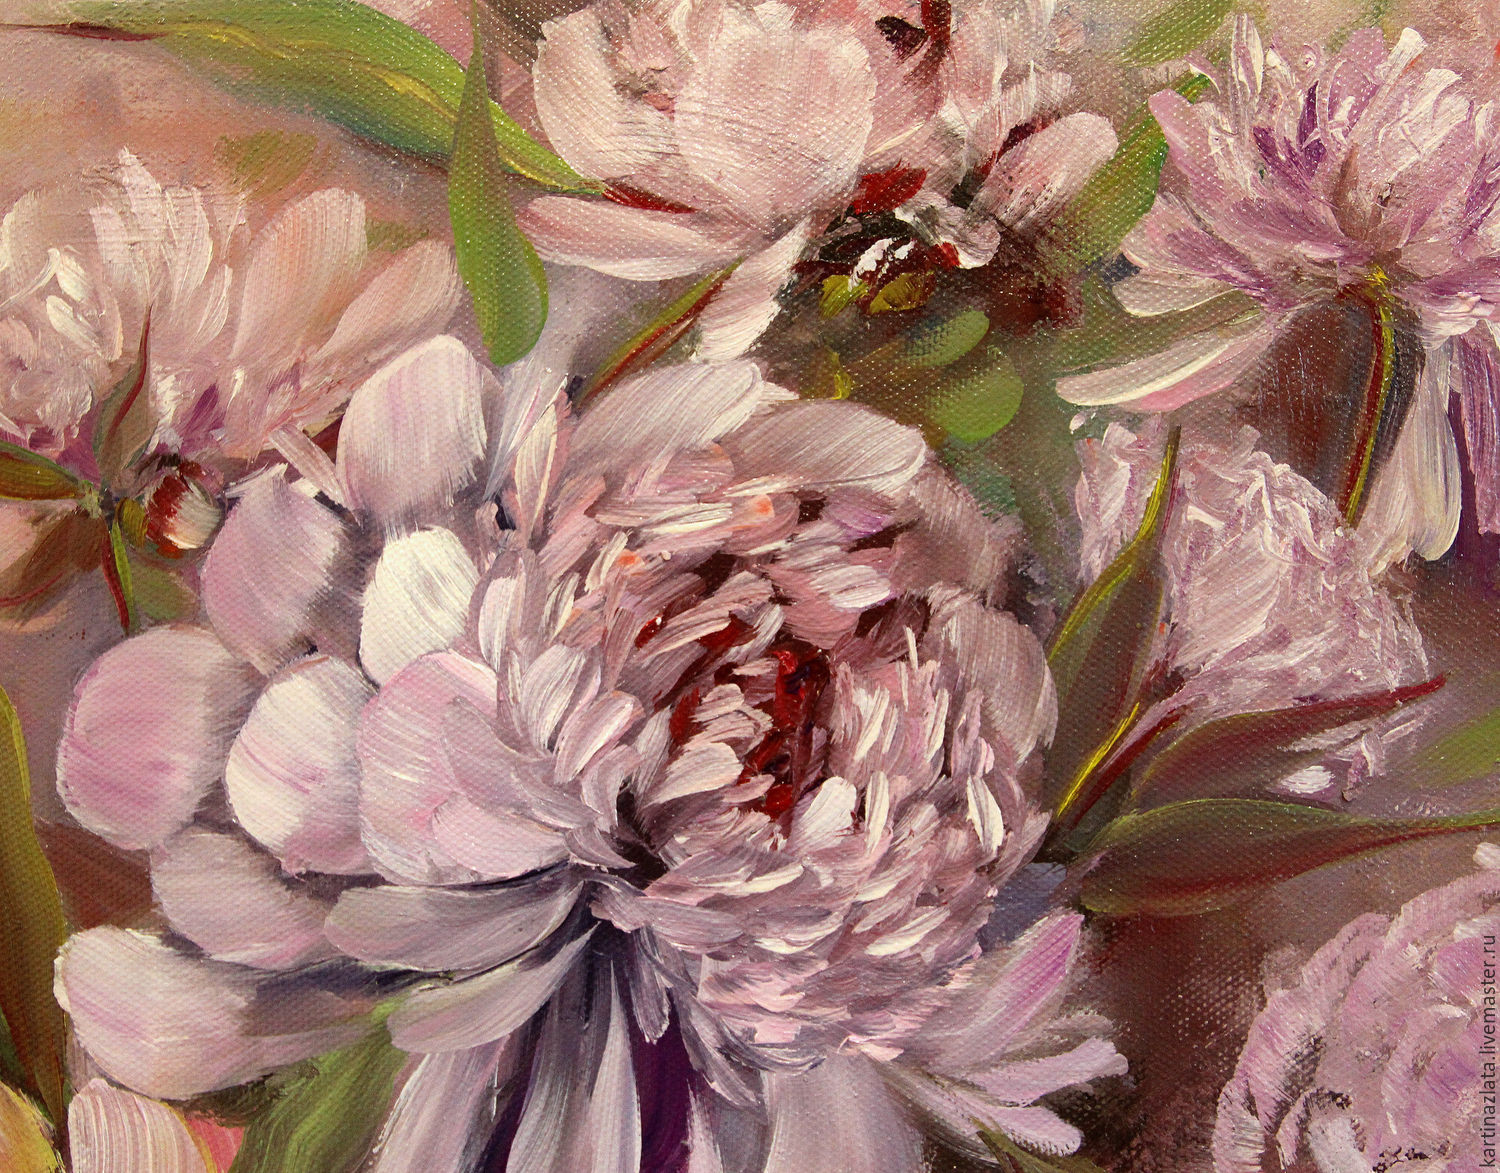 Pink peonies oil painting shop online on livemaster with shipping my livemaster flower paintings handmade pink peonies oil painting positive picture helena gold my livemaster mightylinksfo